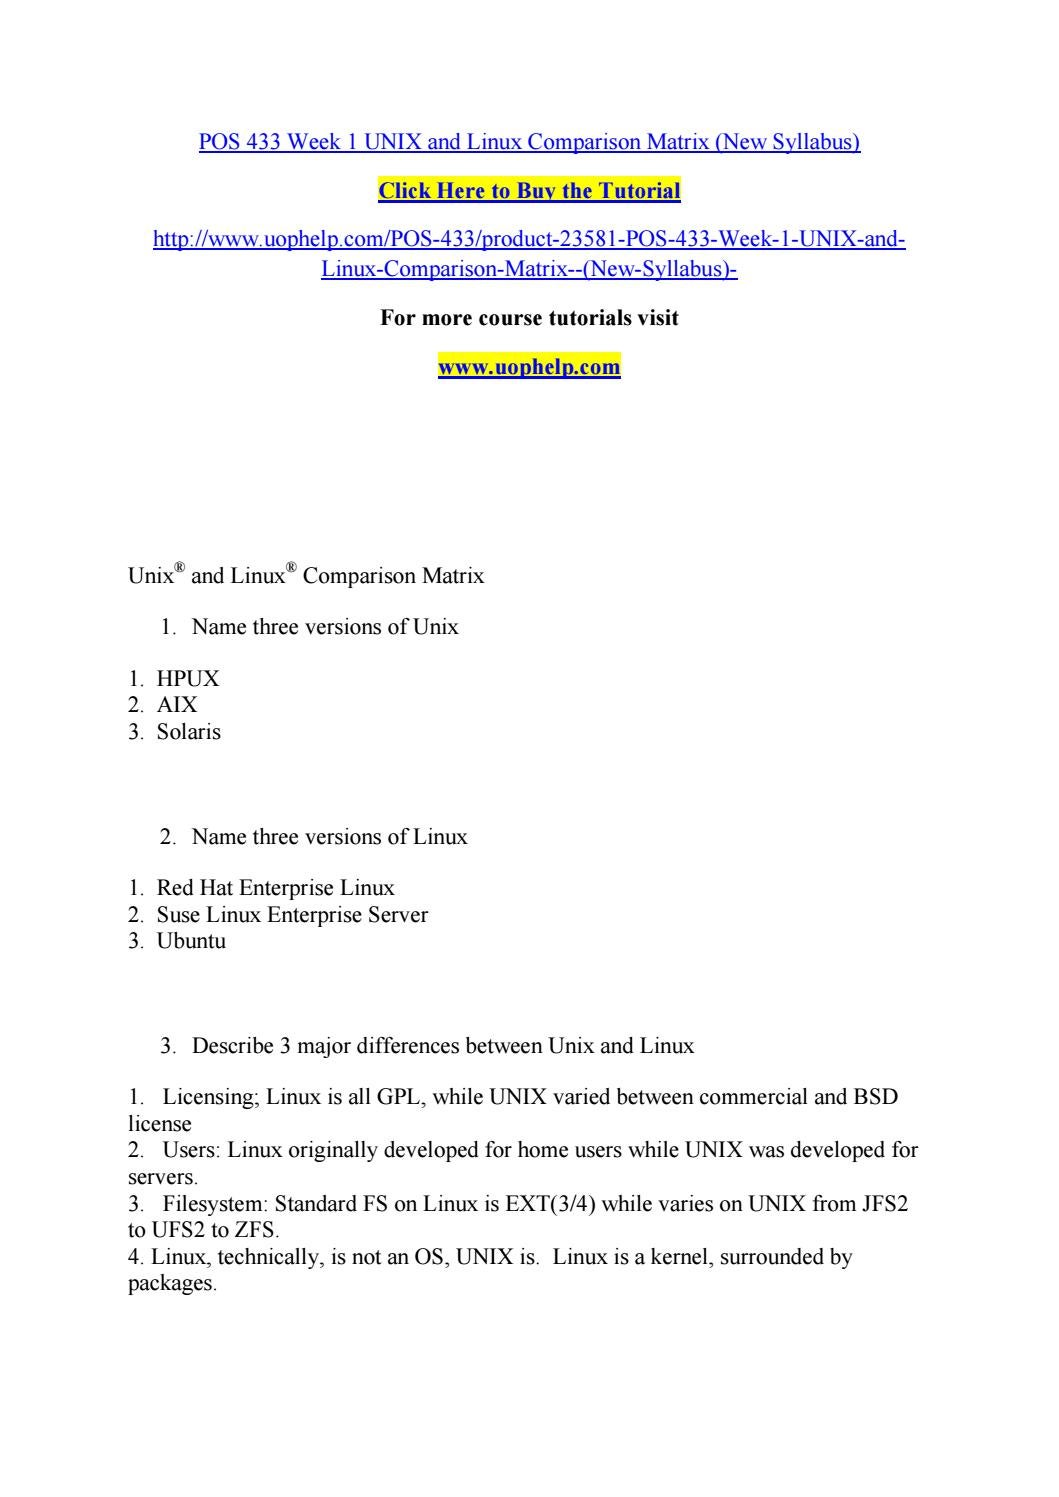 Pos 433 week 1 unix and linux comparison matrix (new syllabus) by